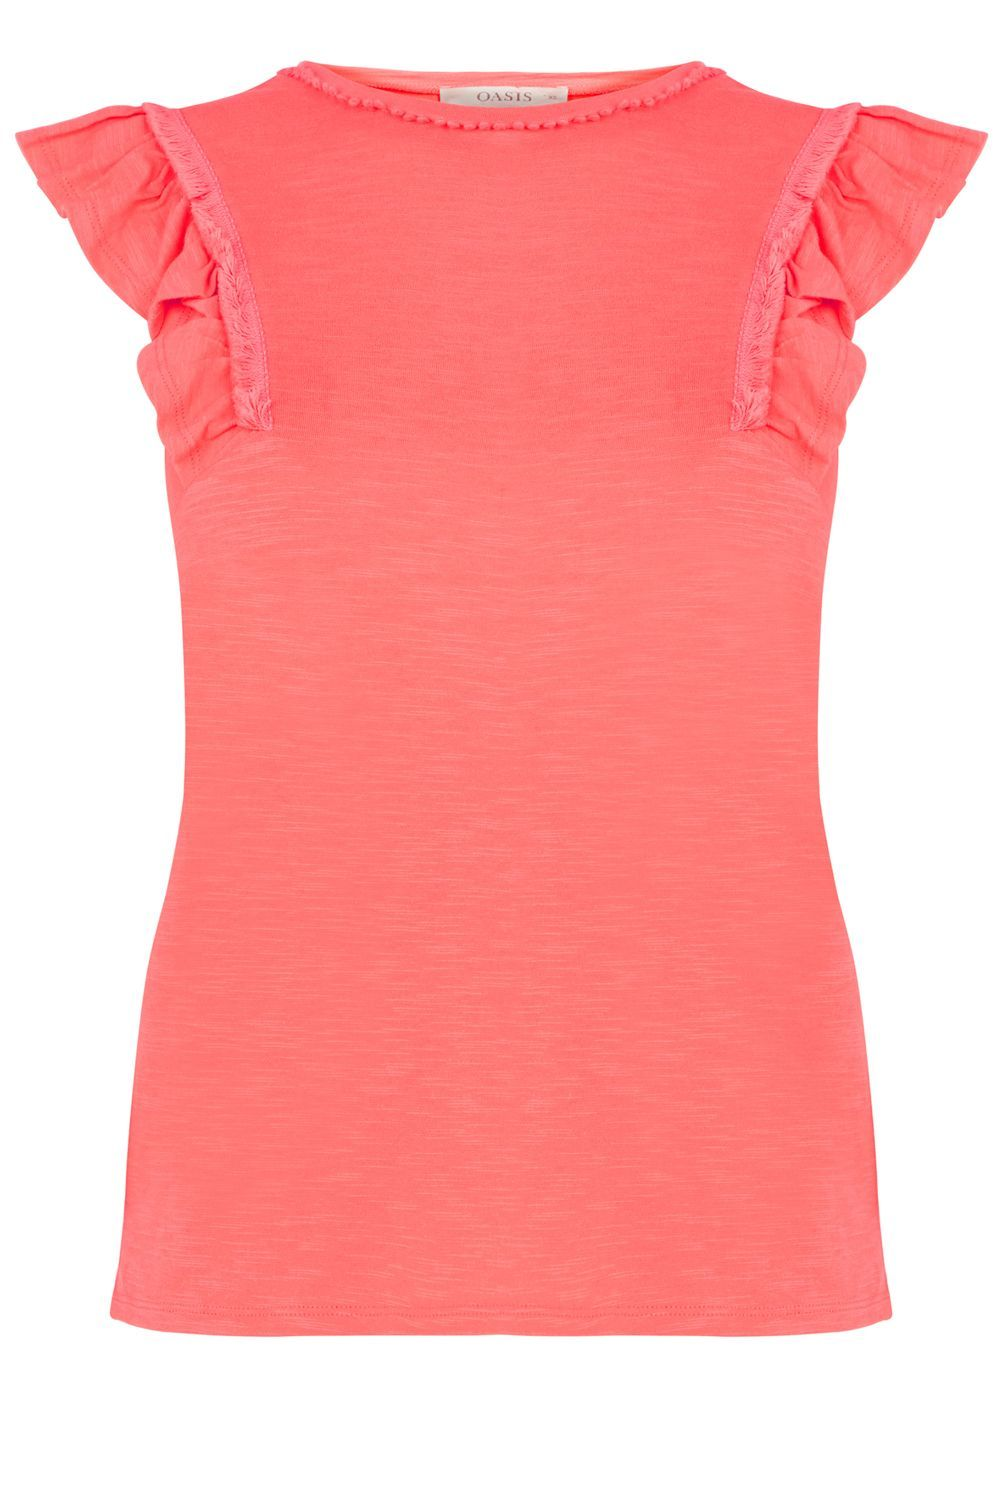 Ruffle Slub Shell, Coral - sleeve style: angel/waterfall; pattern: plain; predominant colour: coral; occasions: casual; length: standard; style: top; fibres: cotton - 100%; fit: body skimming; neckline: crew; sleeve length: short sleeve; texture group: jersey - clingy; pattern type: fabric; season: s/s 2016; wardrobe: highlight